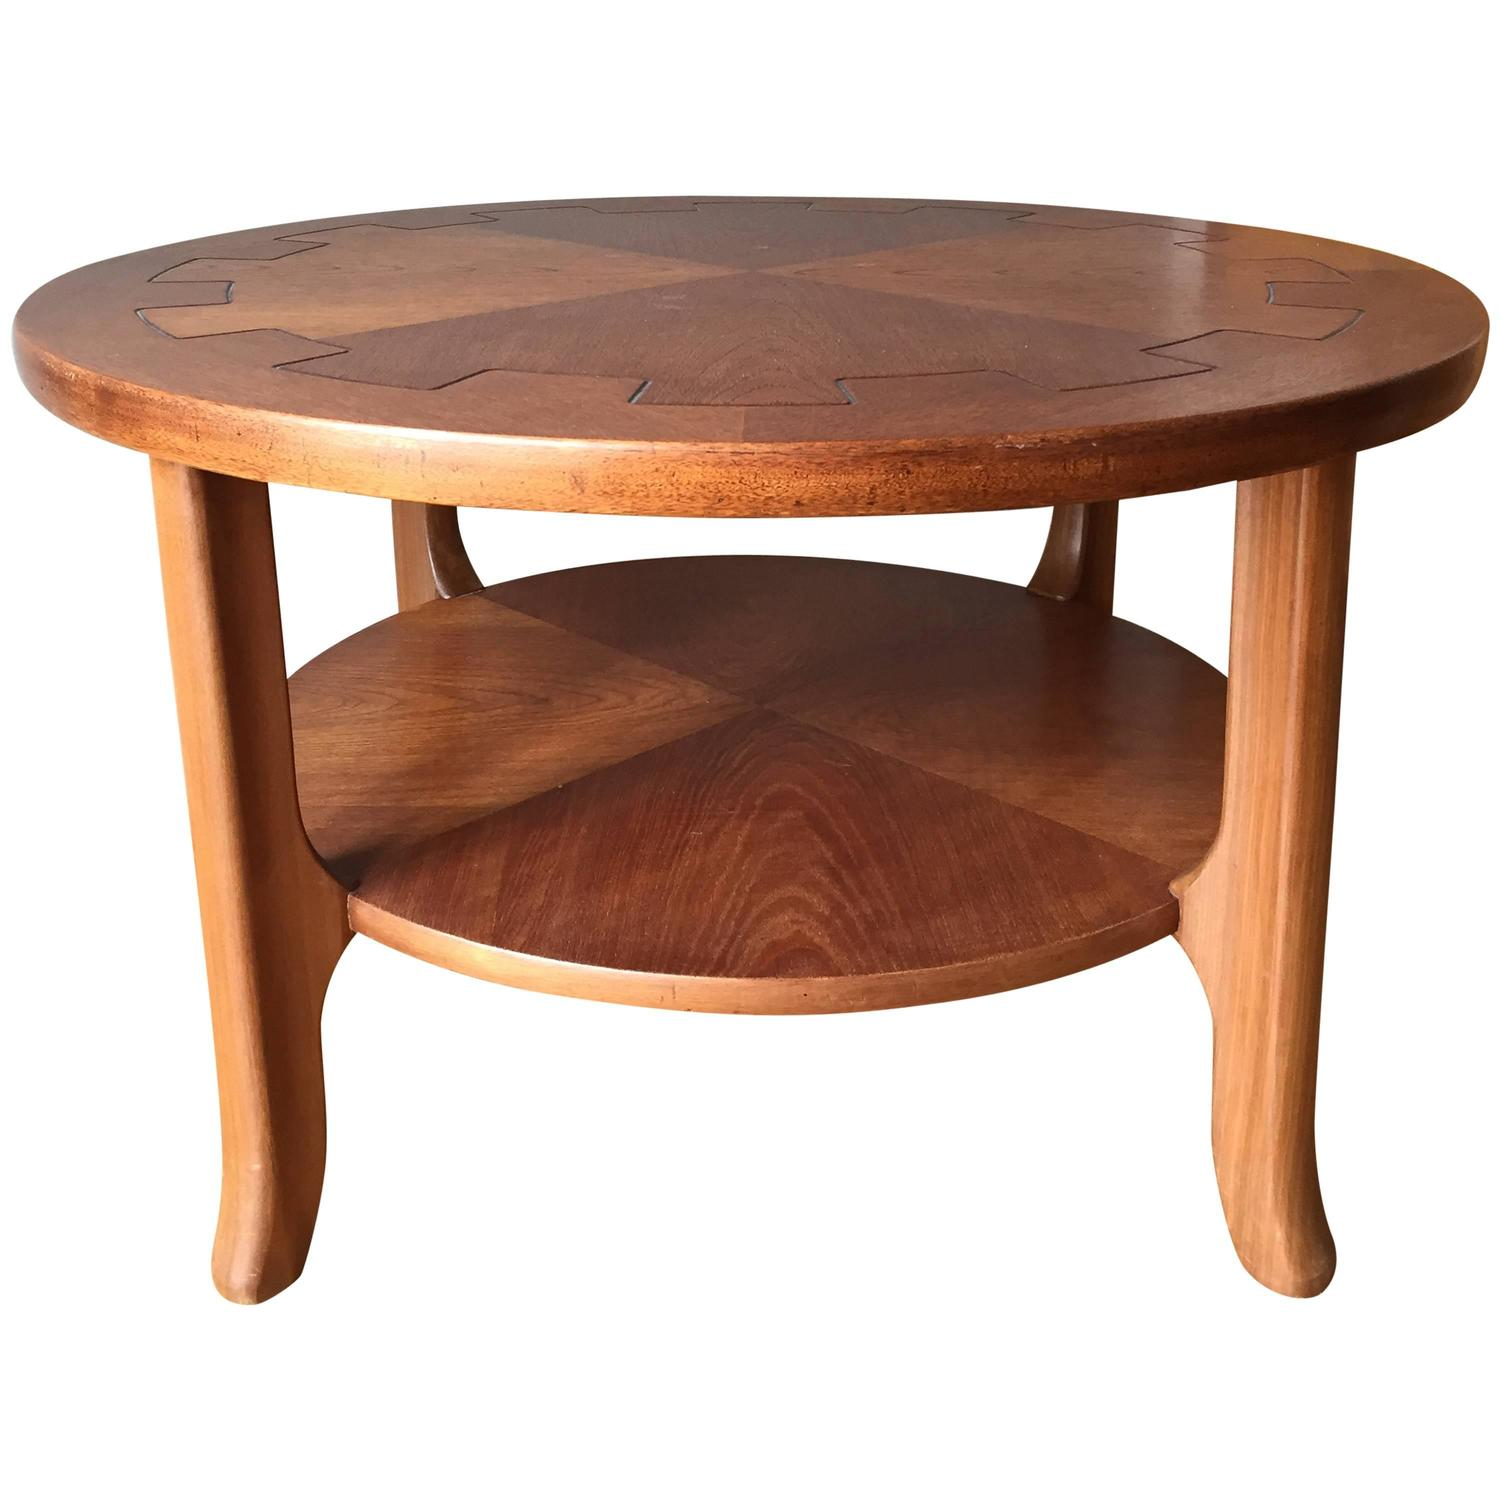 Amazing photo of  Circular Oak and Walnut Two Tiered Coffee Table For Sale at 1stdibs with #BE5F0D color and 1500x1500 pixels